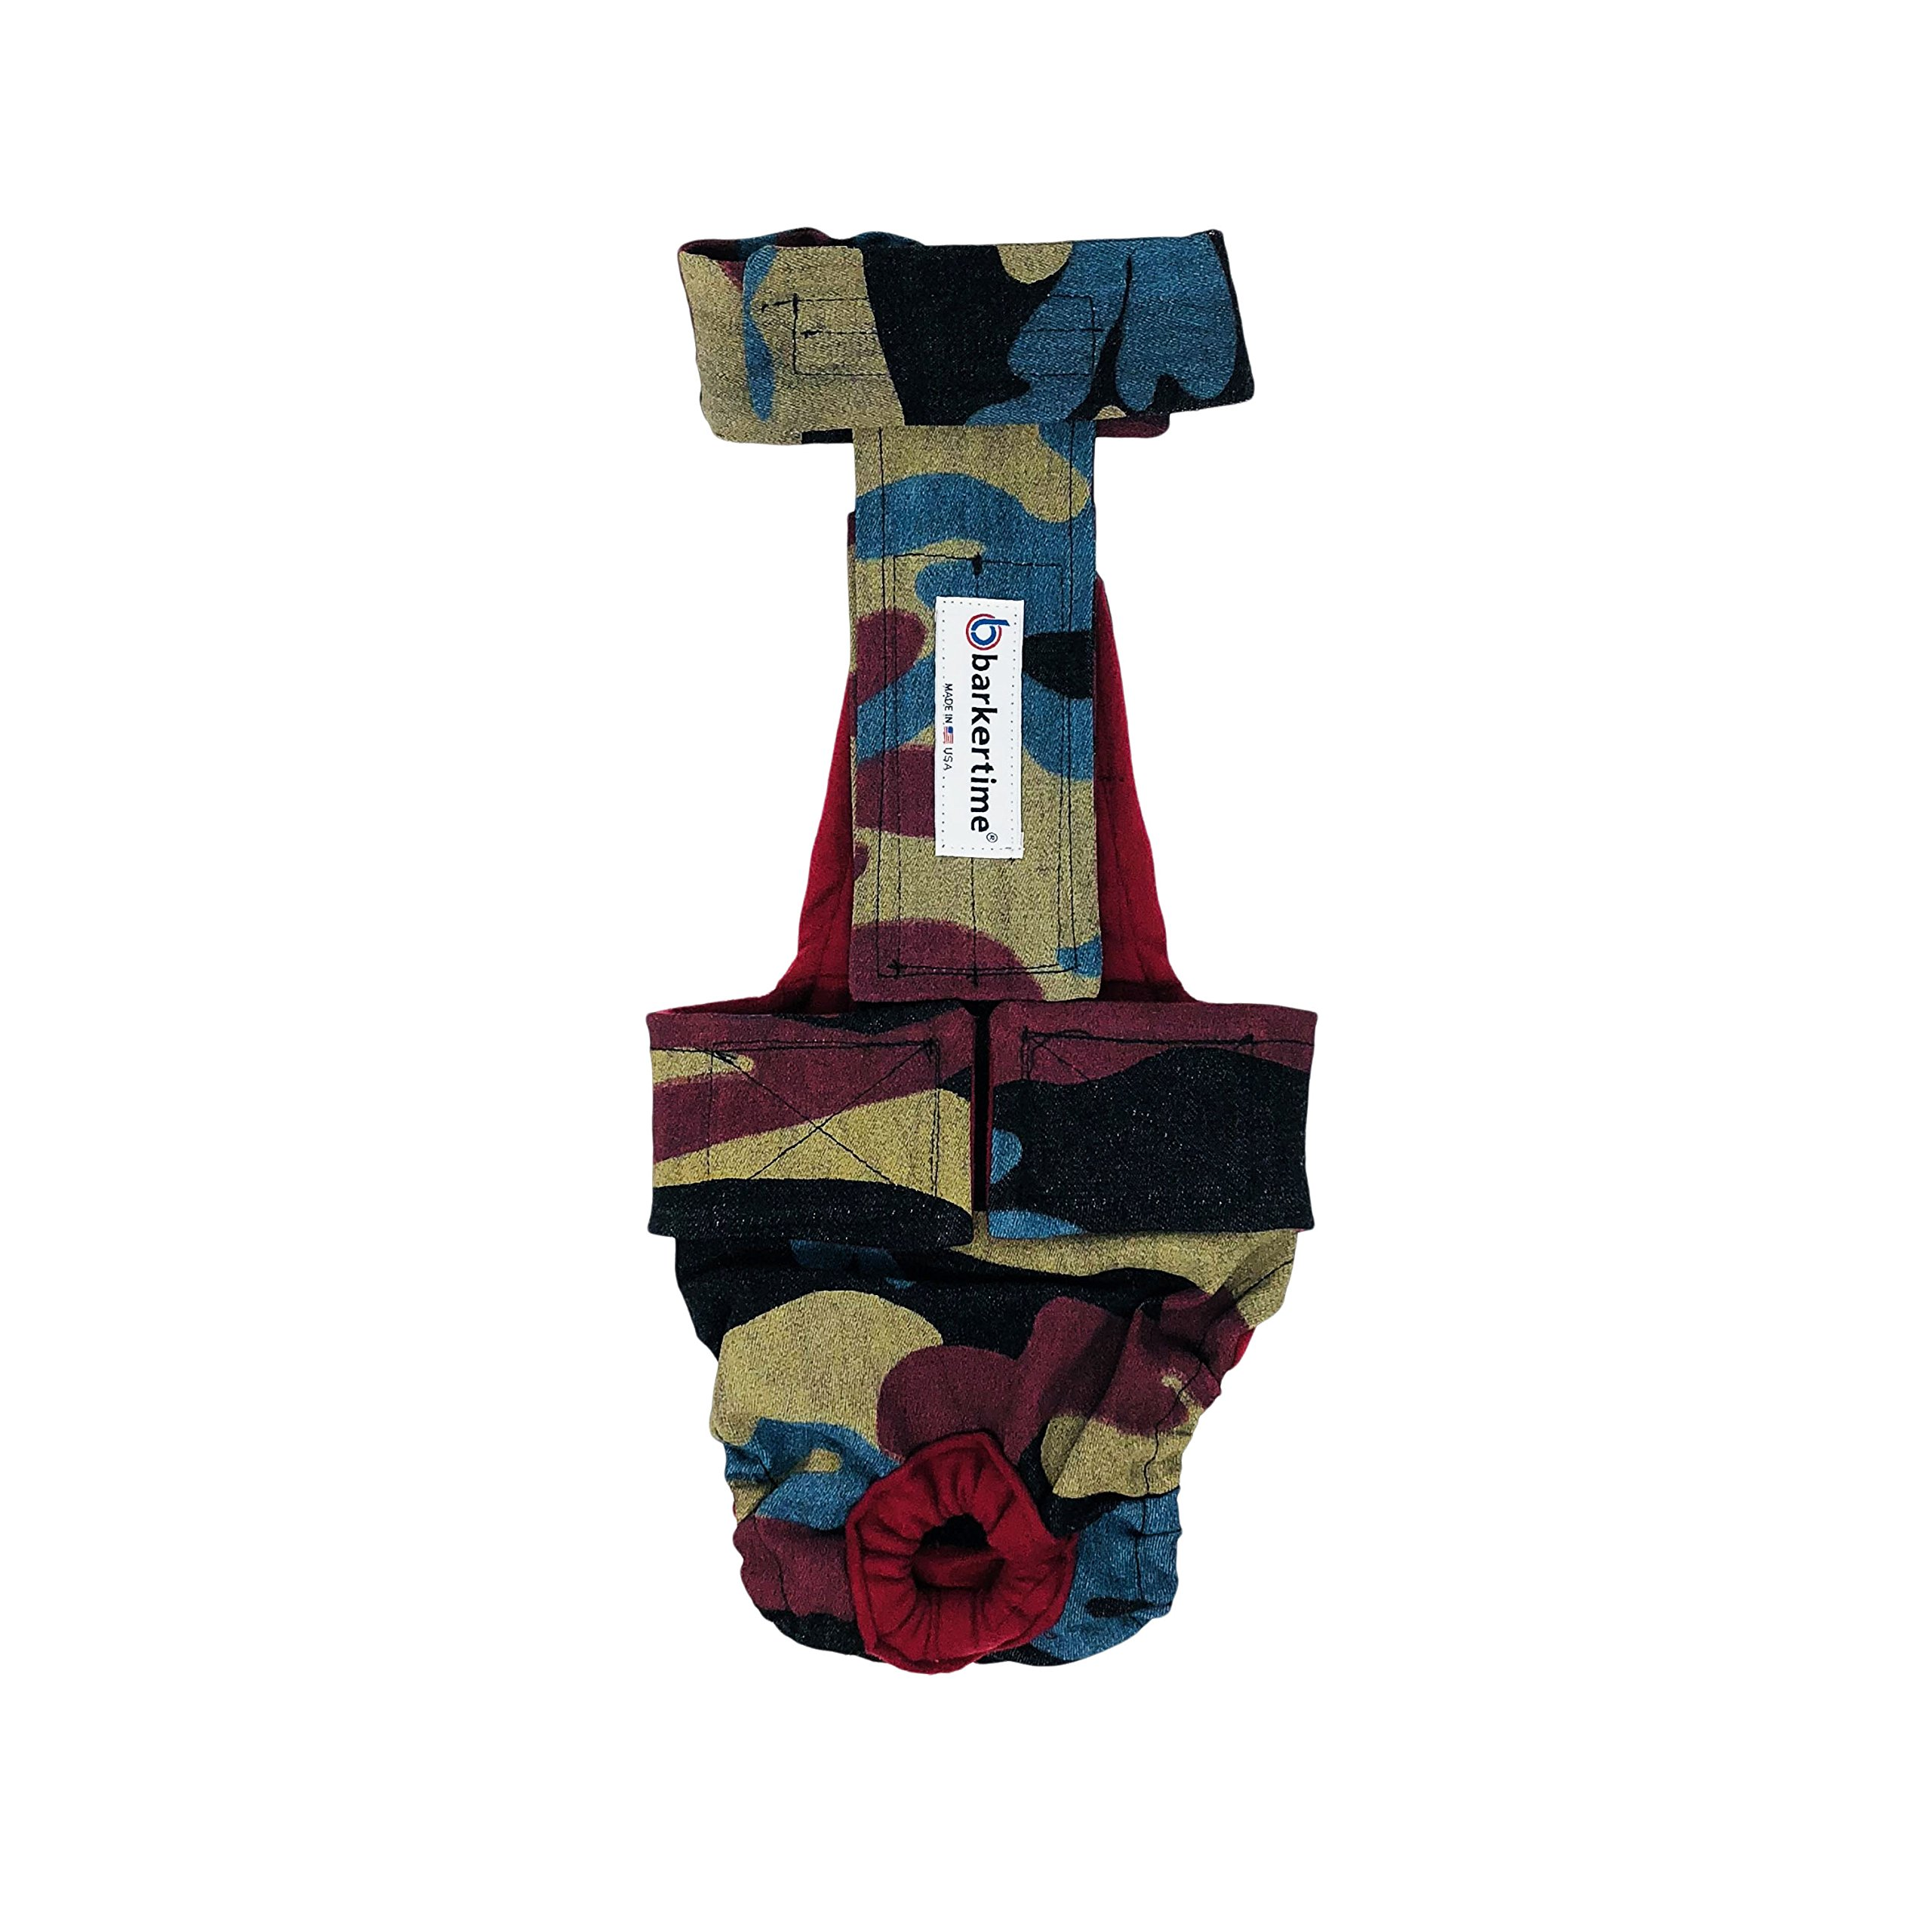 Barkertime Dog Diaper Overall - Made in USA - Rustic Camo Escape-Proof Washable Dog Diaper Overall, XXL, With Tail Hole for Dog Incontinence, Marking, Housetraining and Females in Heat